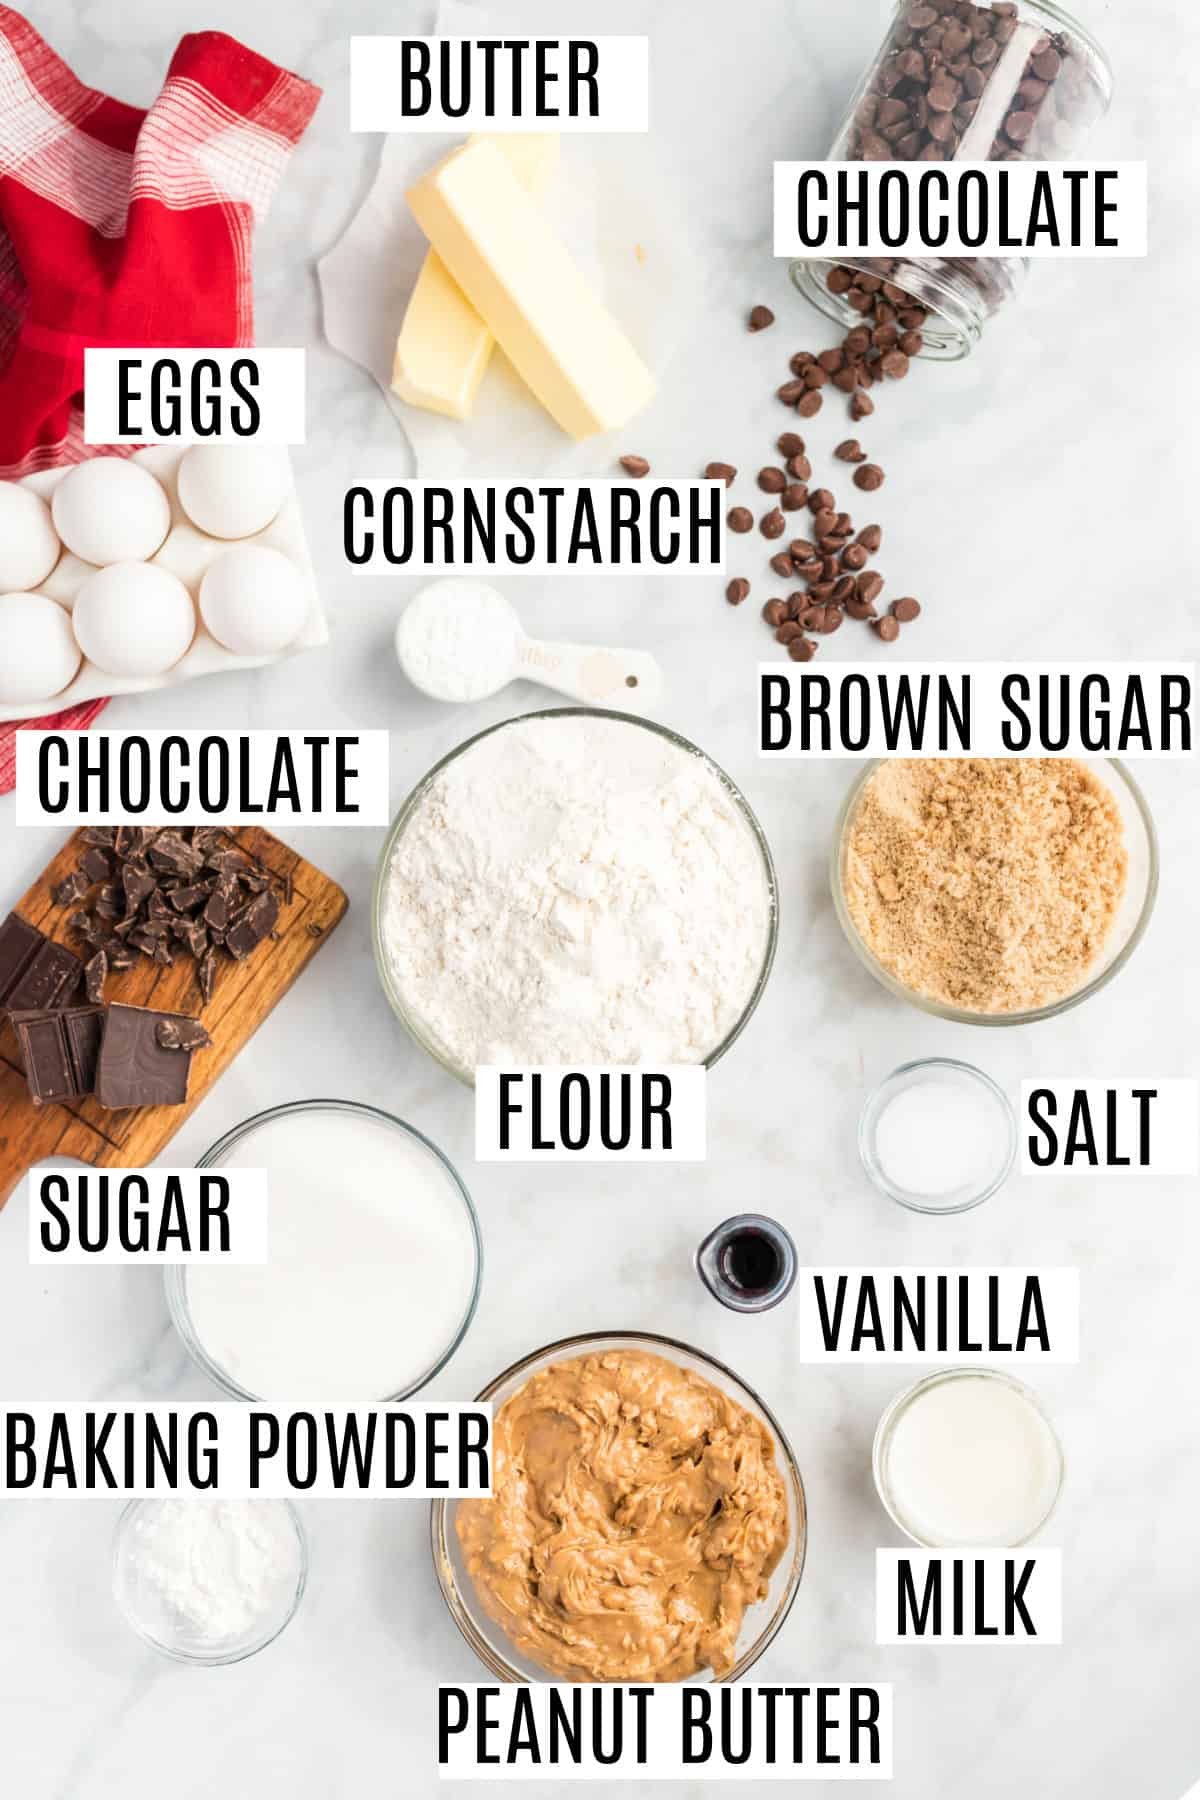 Ingredients needed to make peanut butter chocolate chip cookies from scratch.